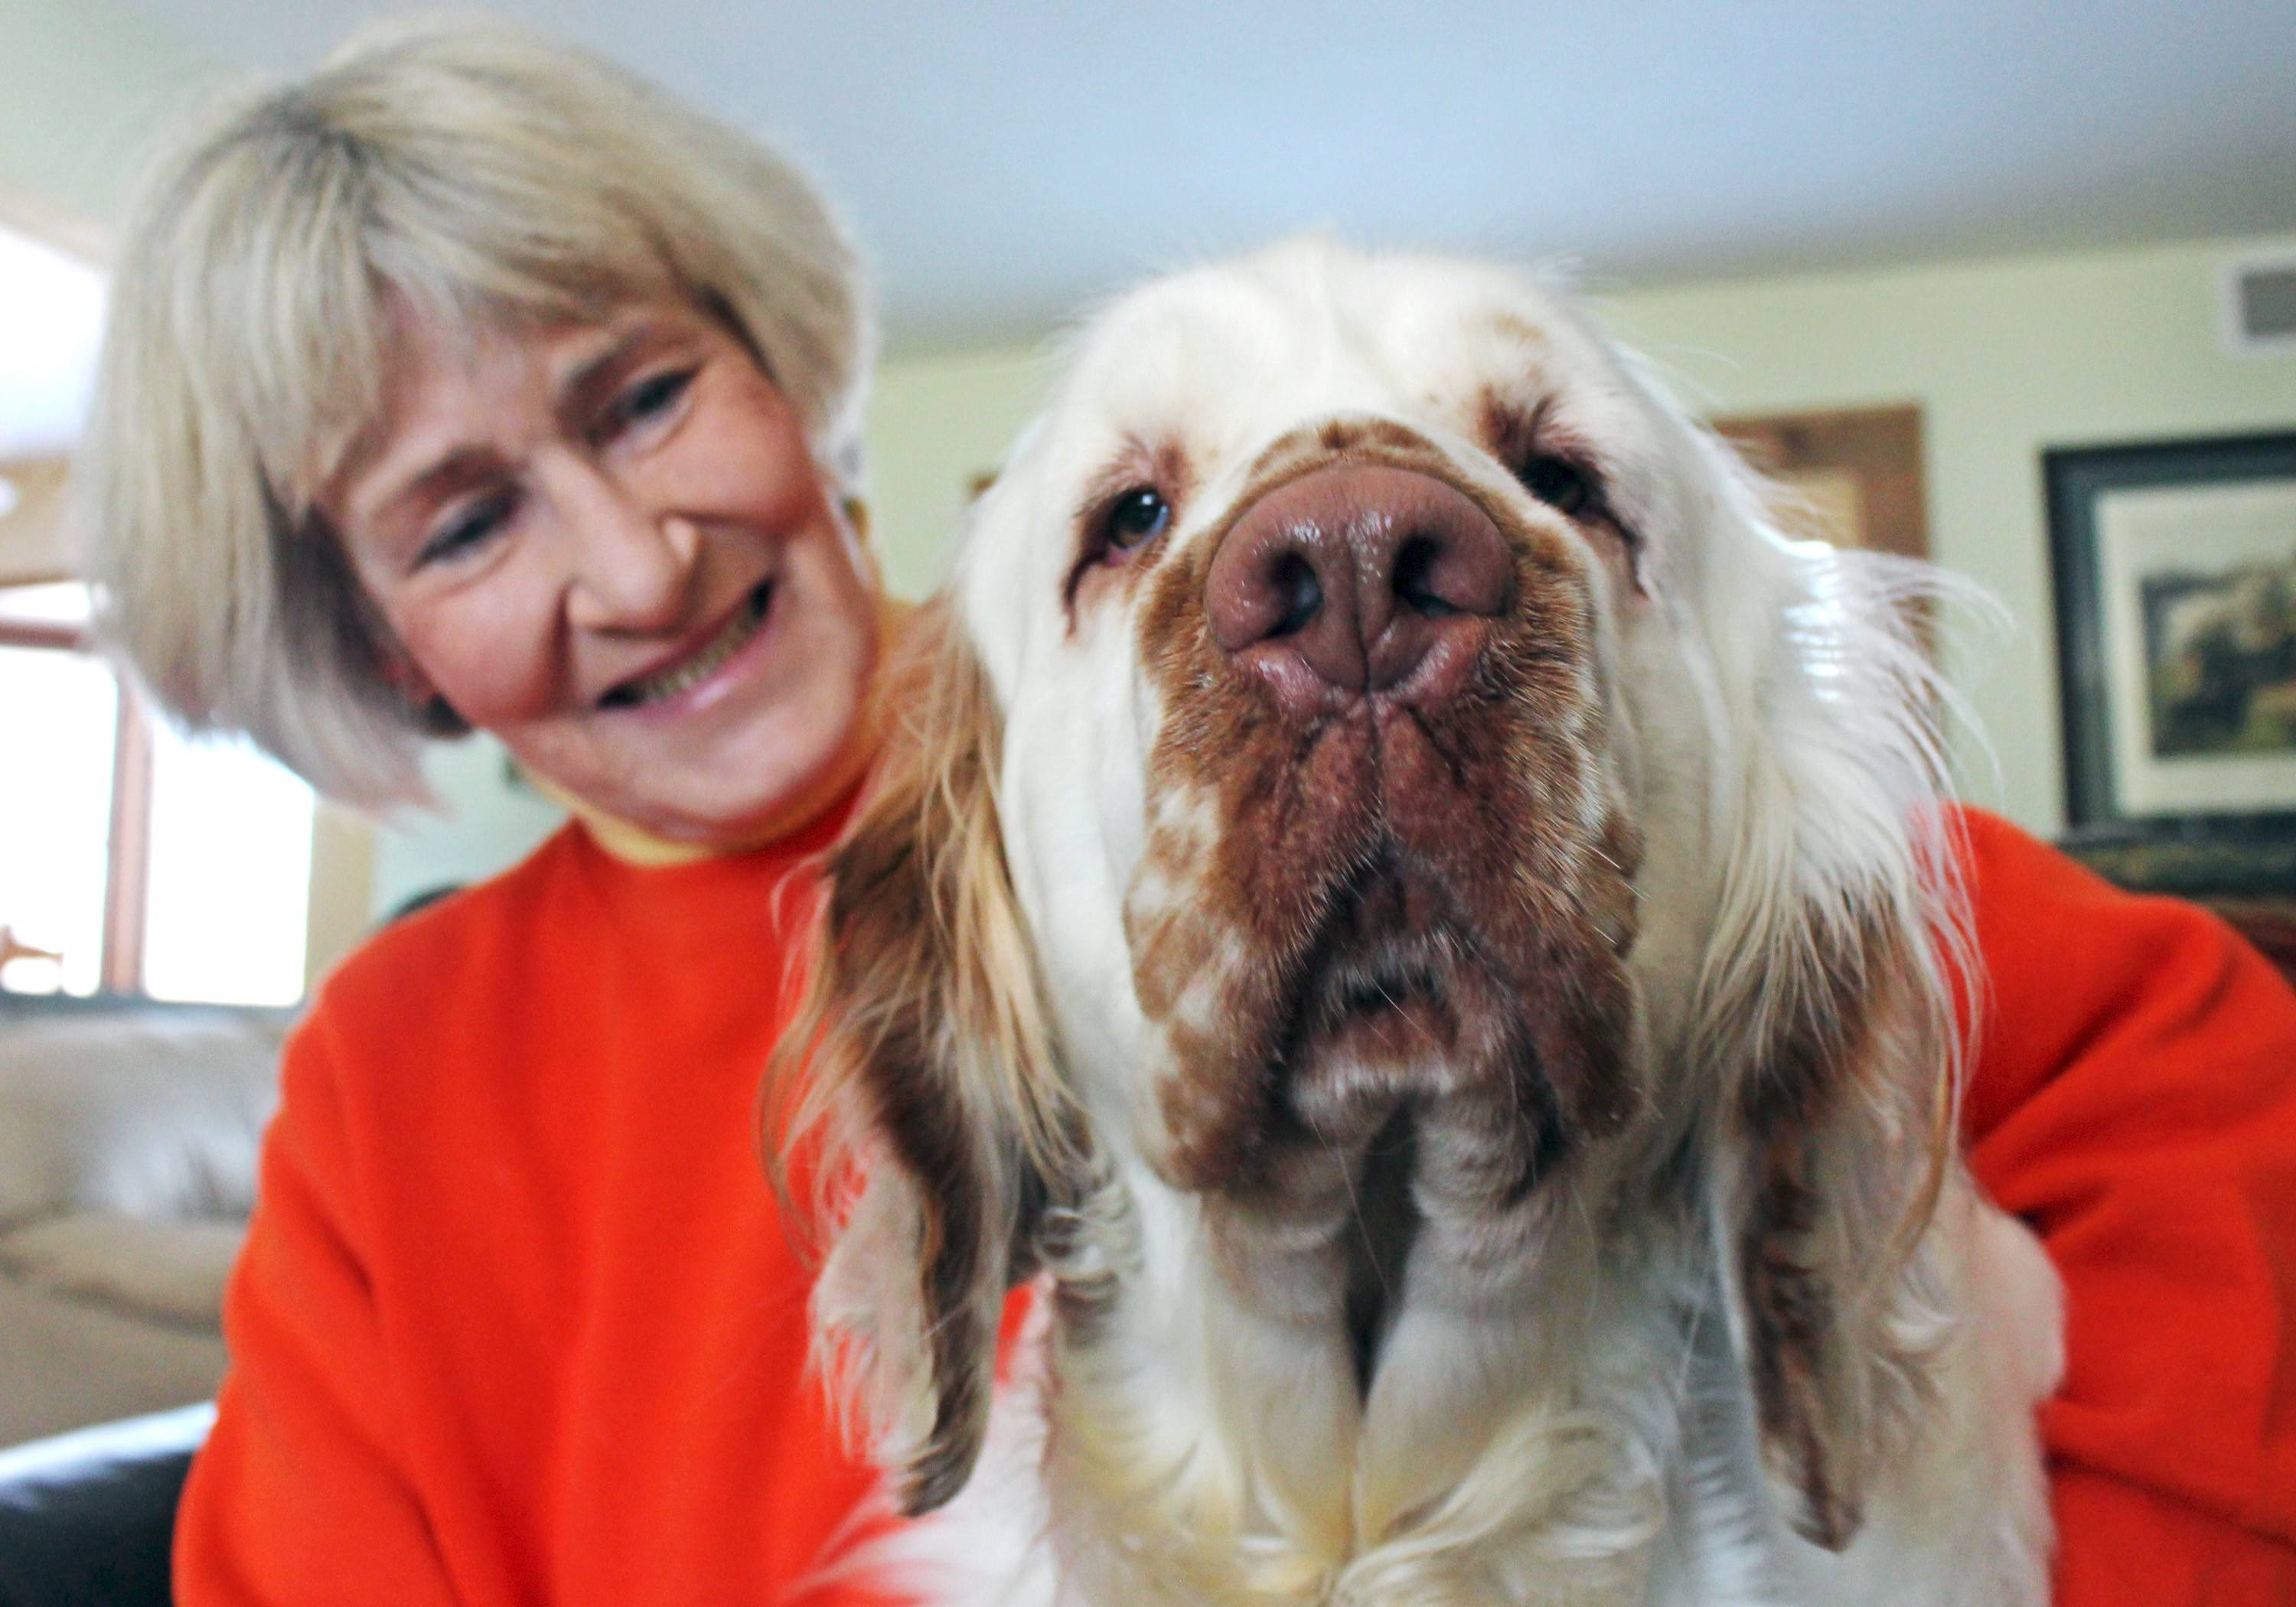 Marlo, a Clumber spaniel, sits next to Helen Marshall at her home in Ottawa, Wis. Marshall will walk with Marlo in the Friday, Feb. 14, parade that kicks off the National Pheasant Fest & Quail Classic, a trade show in Milwaukee for canines that point out, scare up and retrieve fowl.